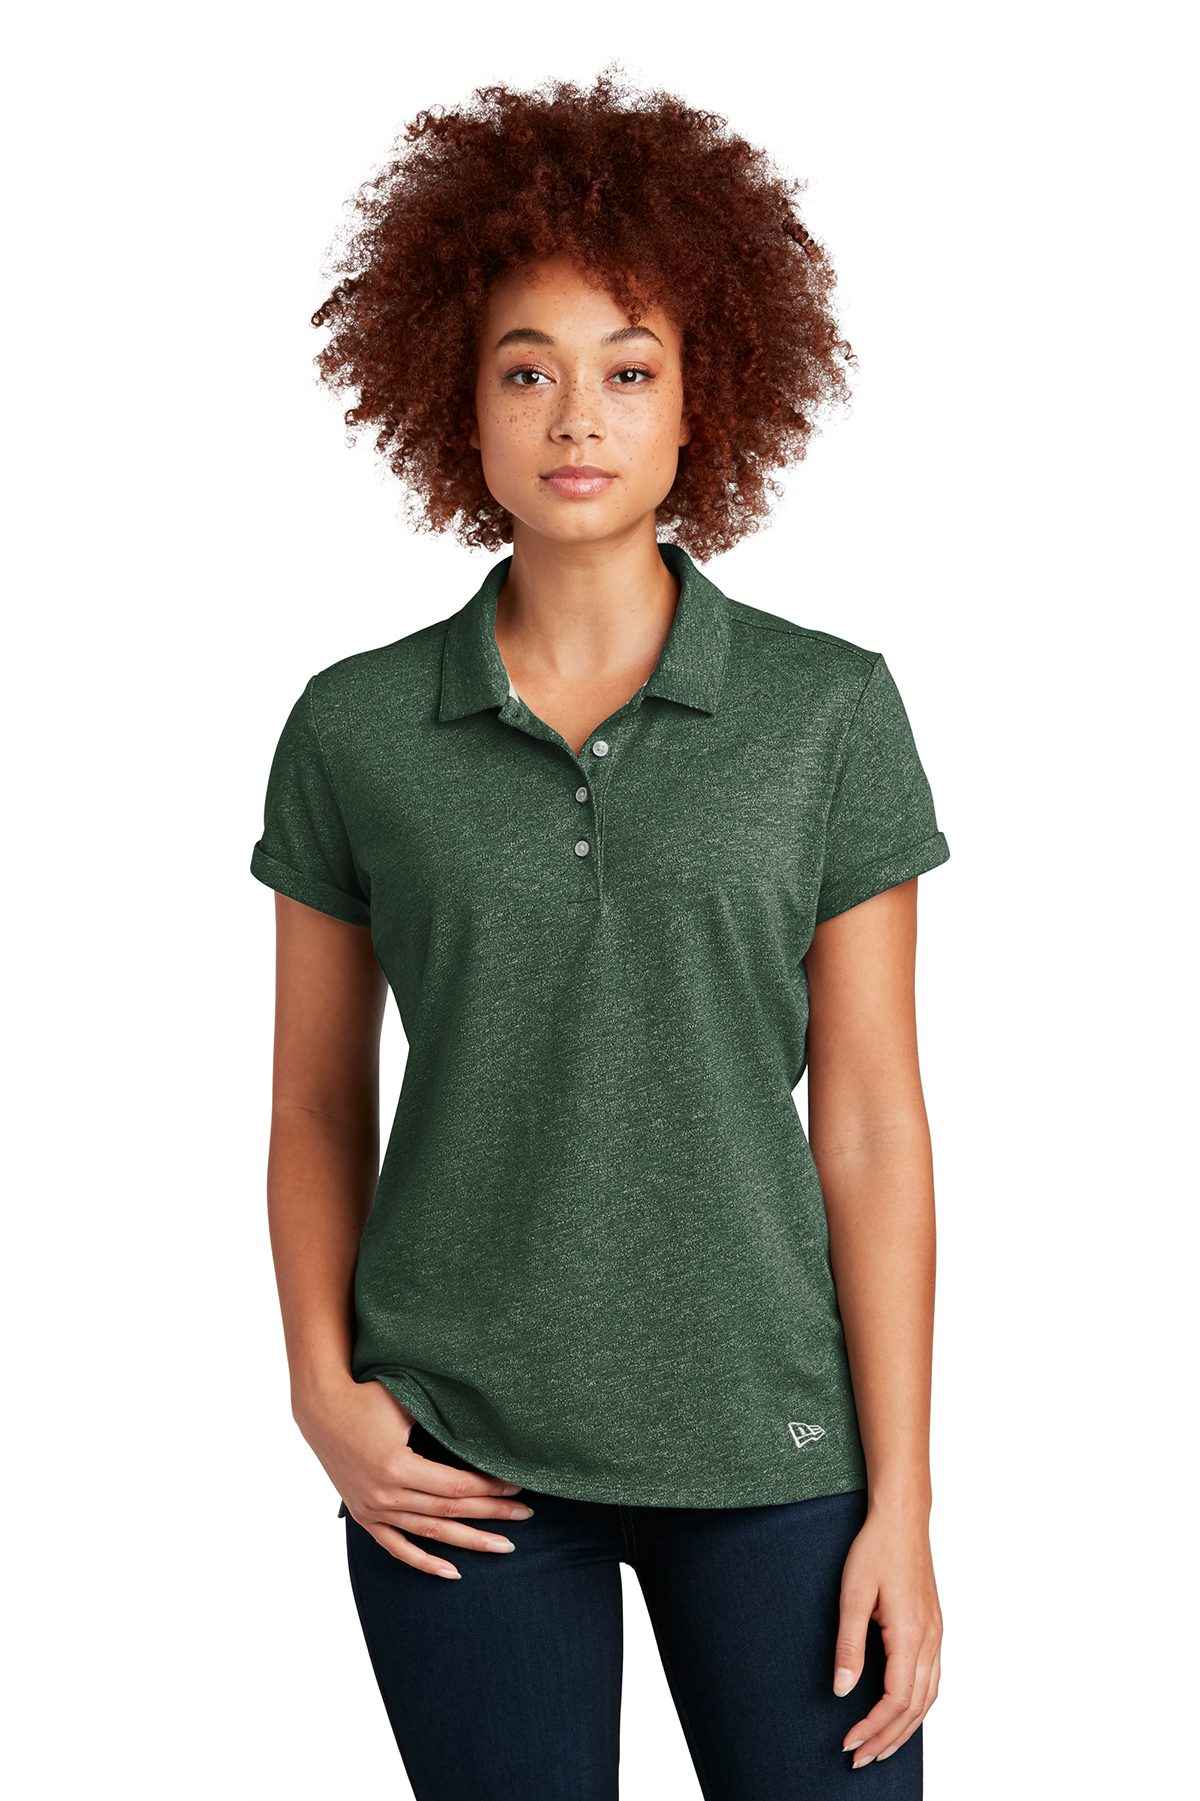 New Era ® LNEA301 - Ladies Slub Twist Polo